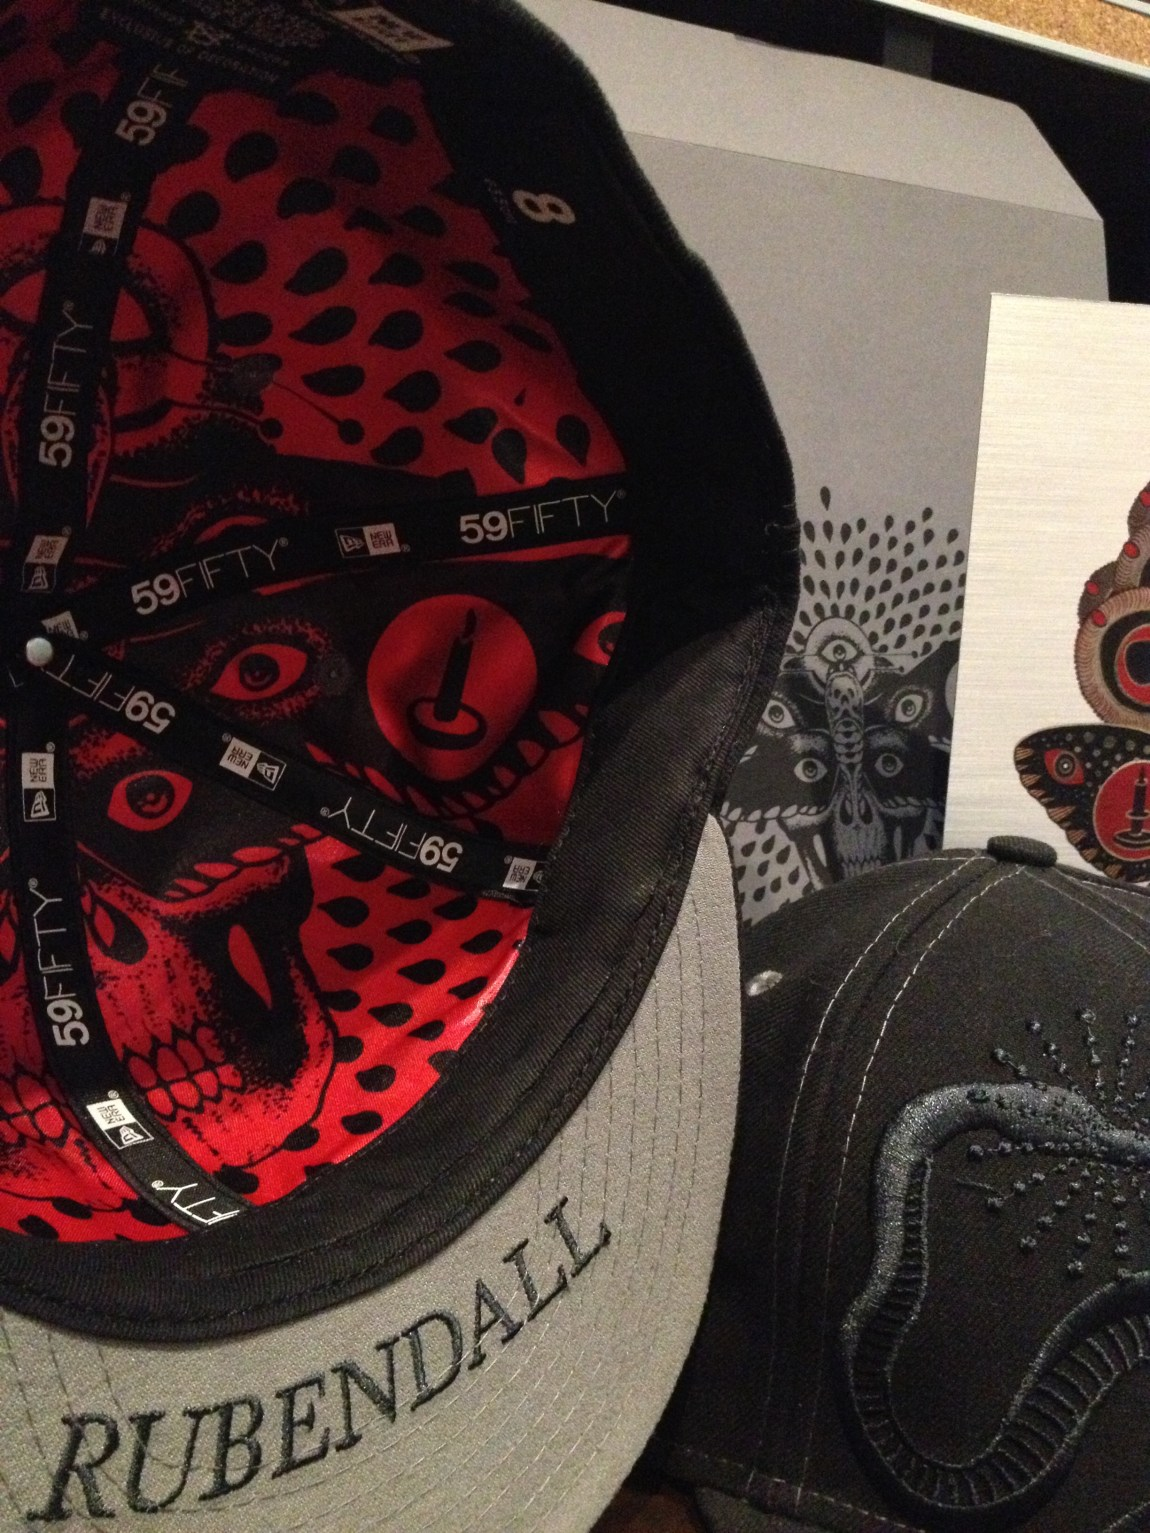 LIMITED EDITION New Era 59FIFTY Baseball Cap by Mike Rubendall (Online Only)